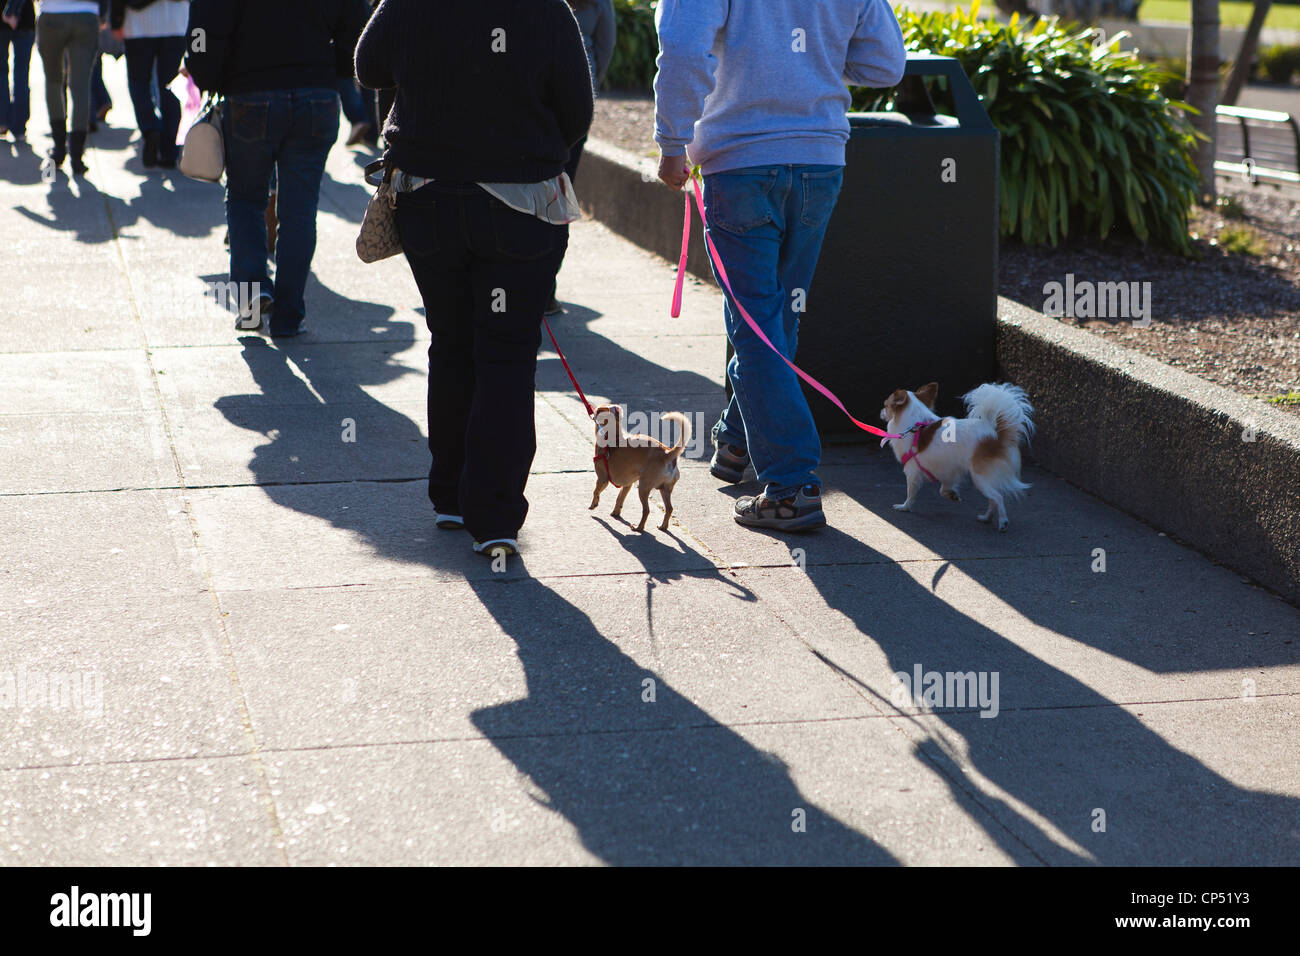 Small dogs out for an afternoon walk - Stock Image